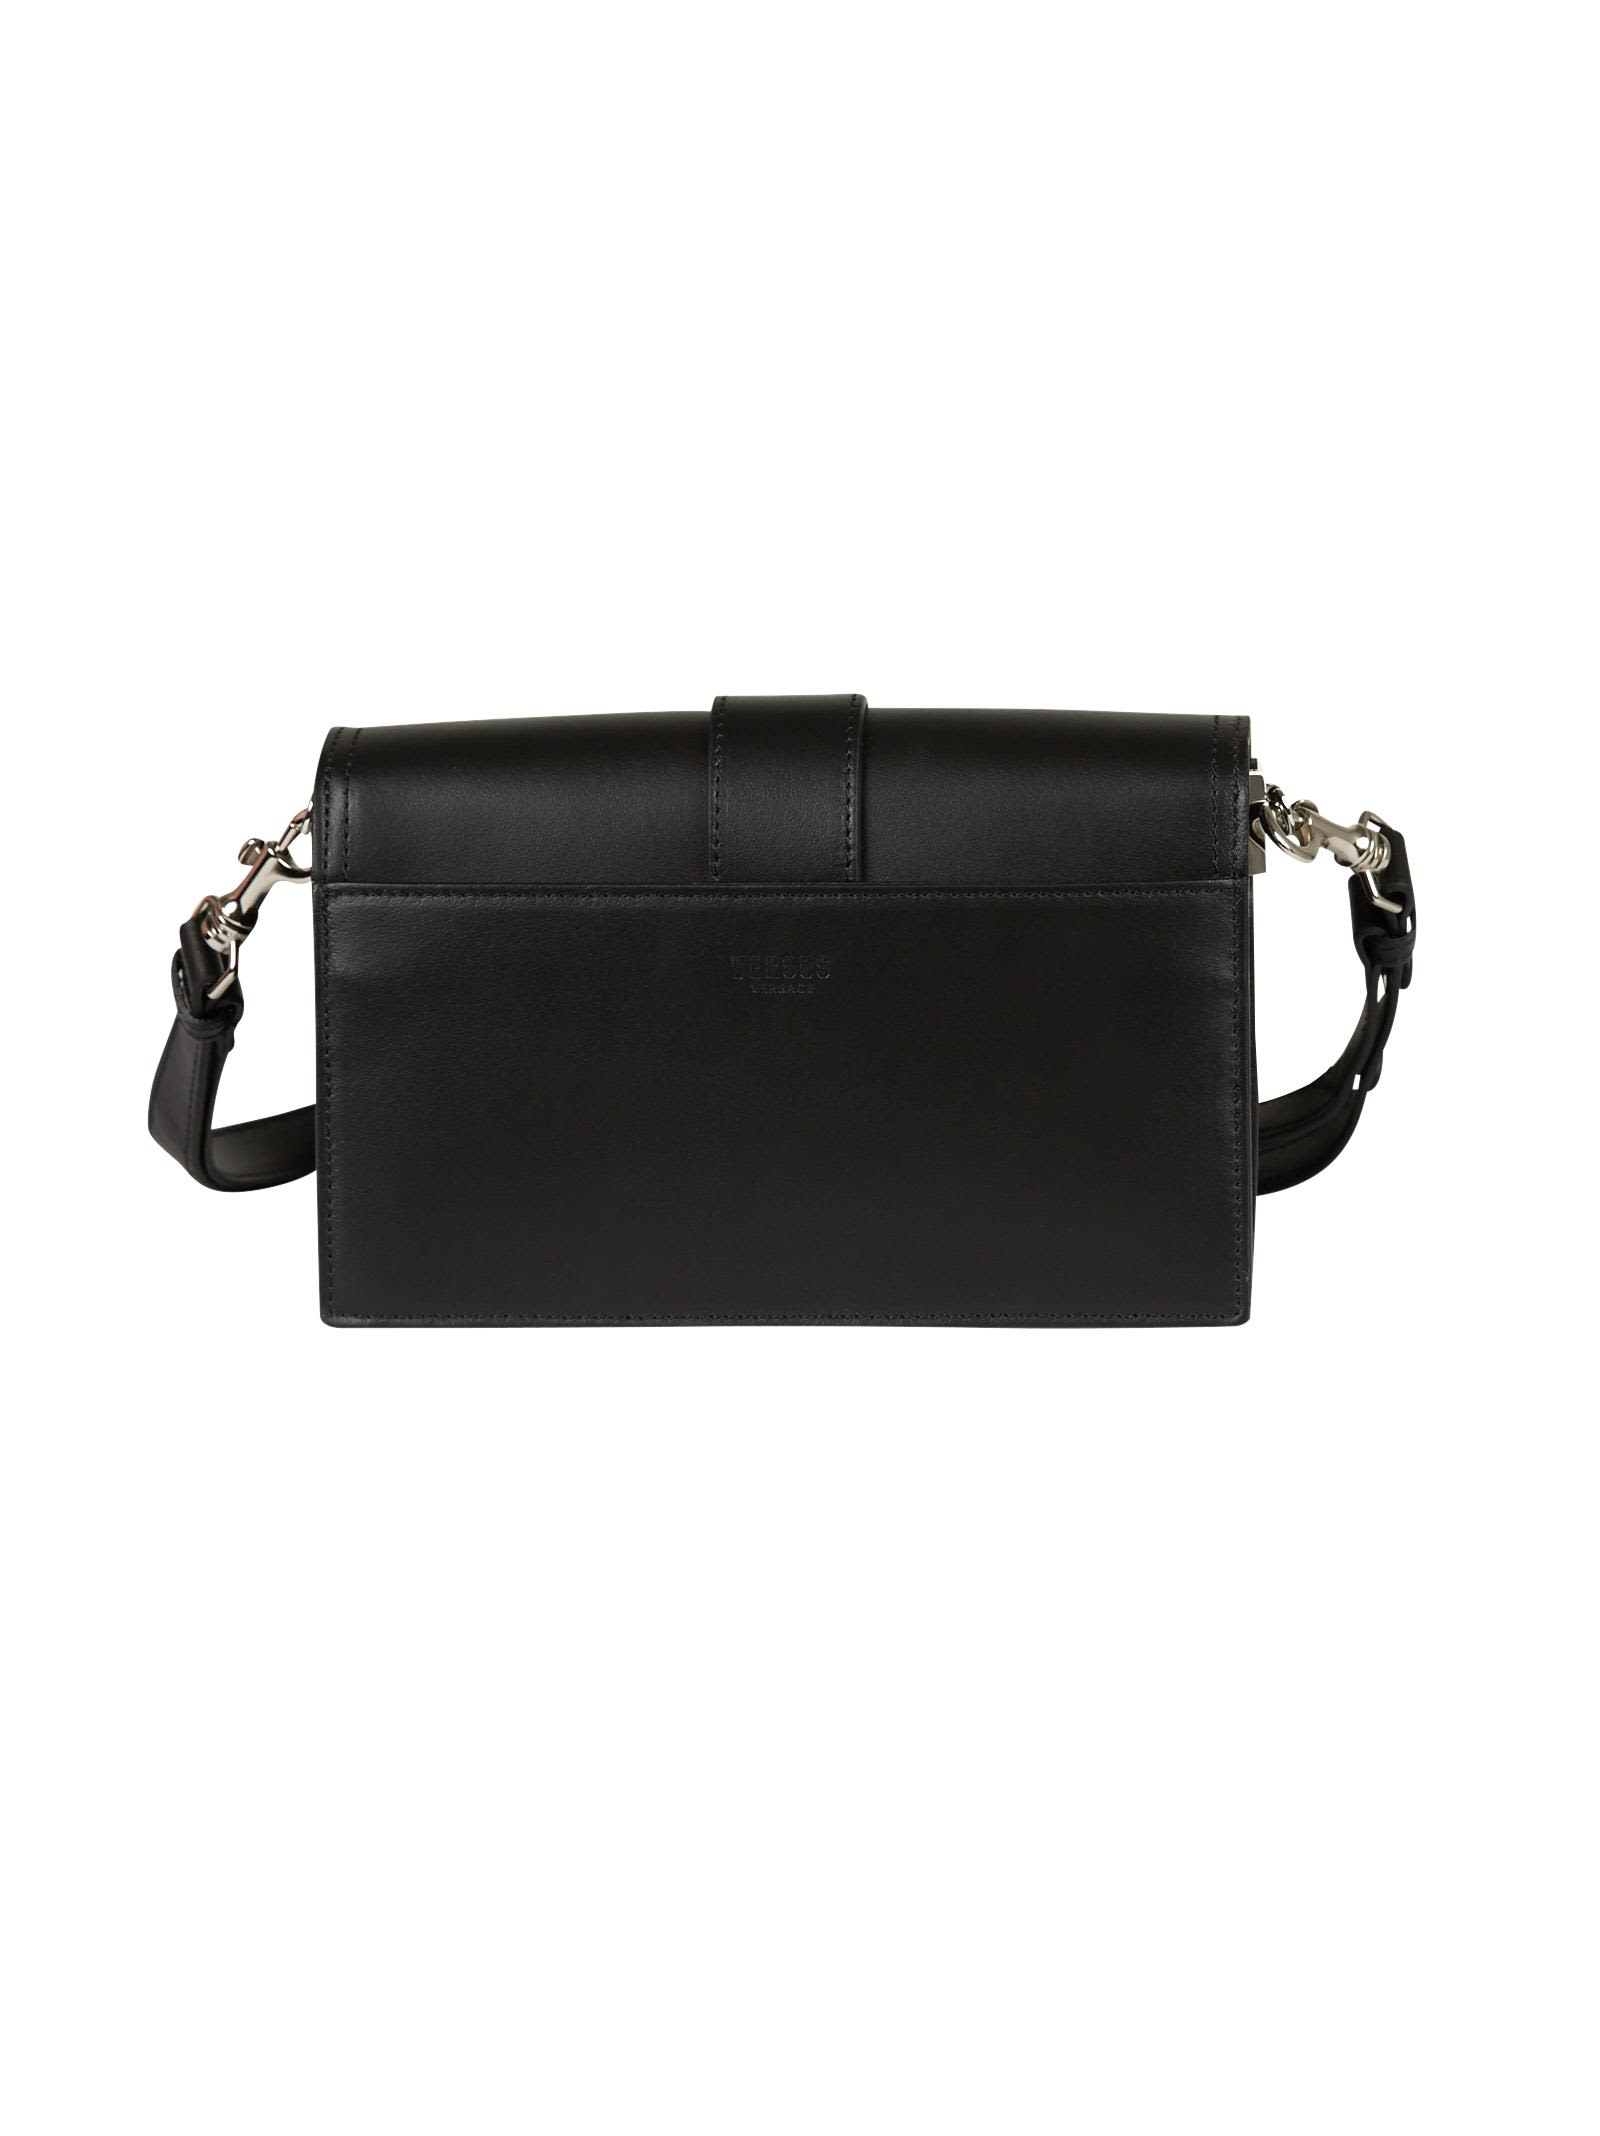 Versus Iconic Buckle fringed bag Qp3FXE